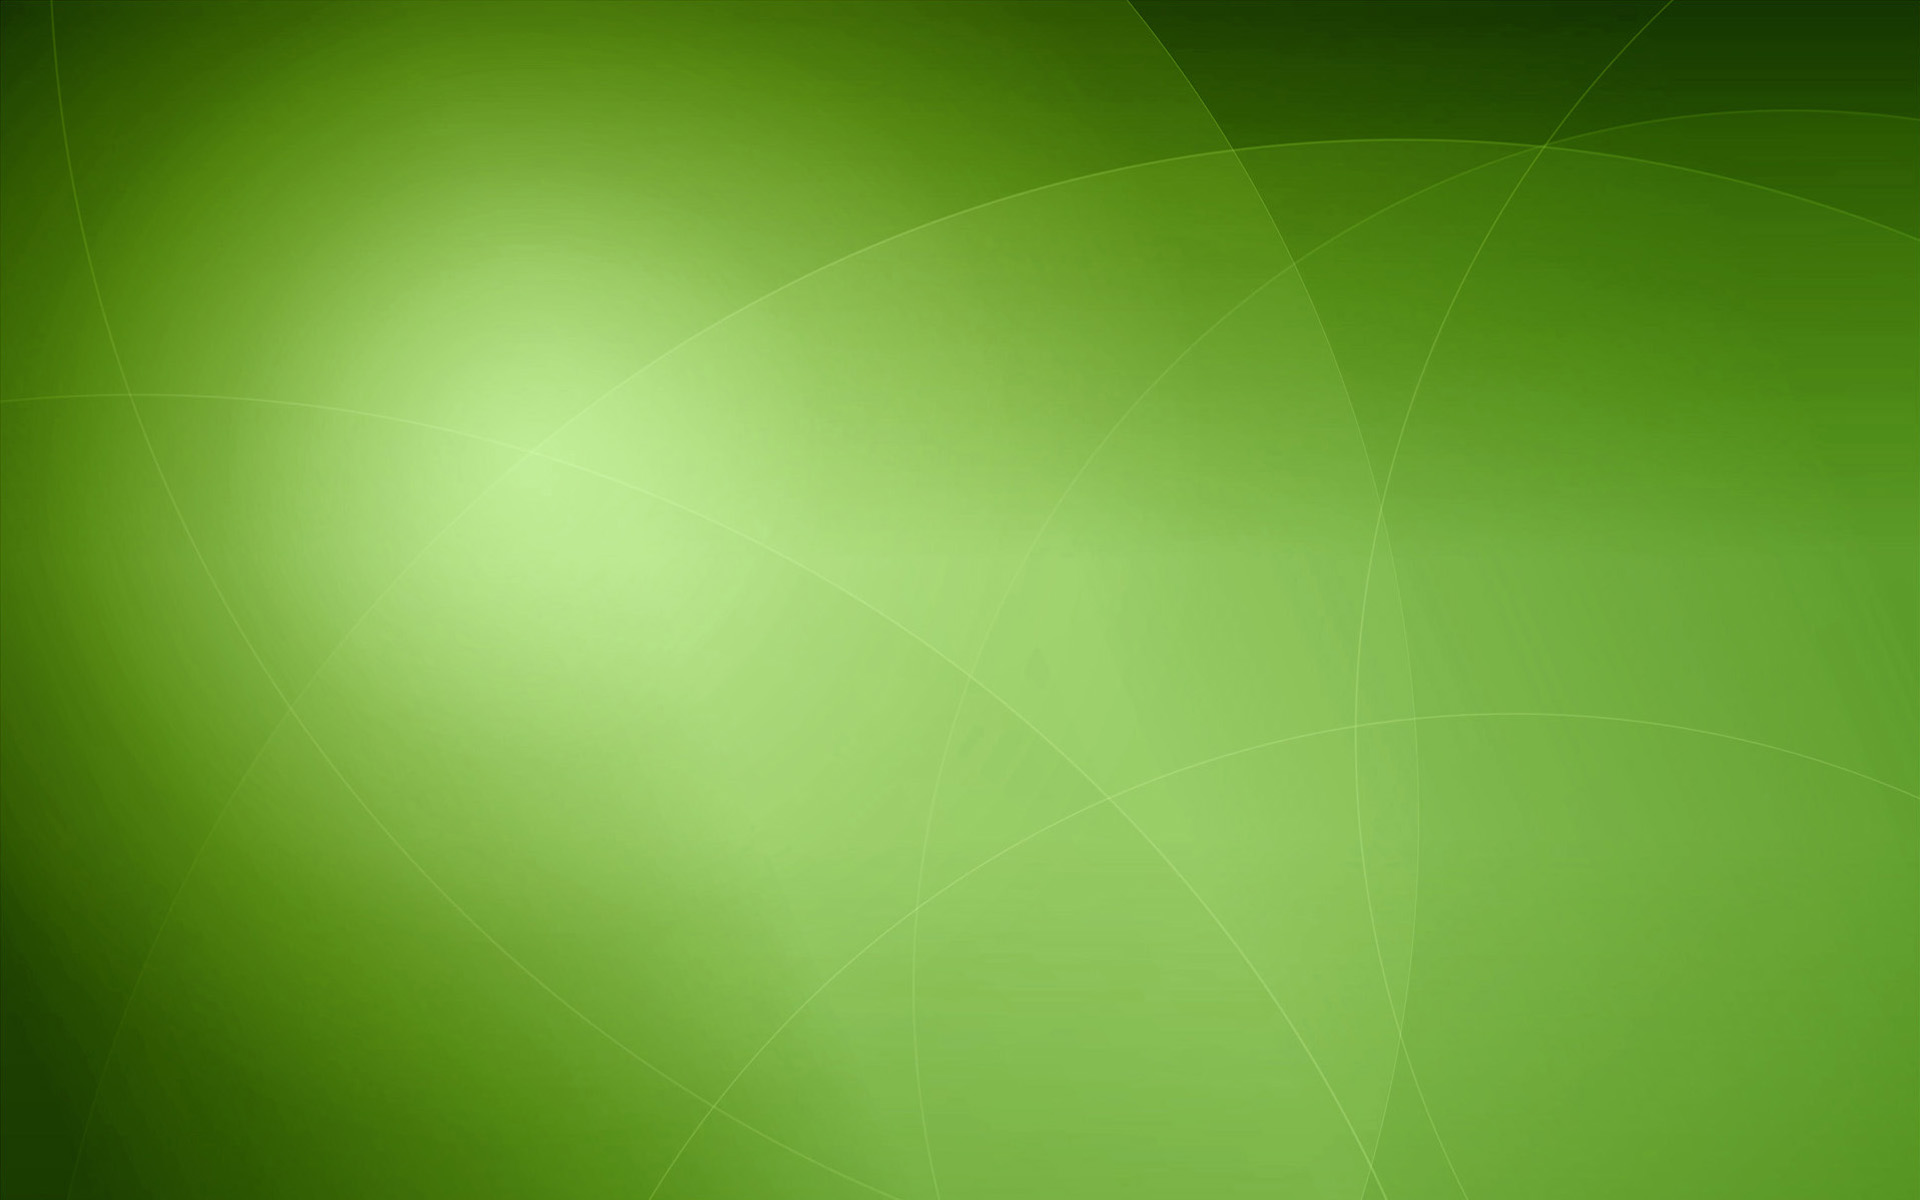 green background 21870